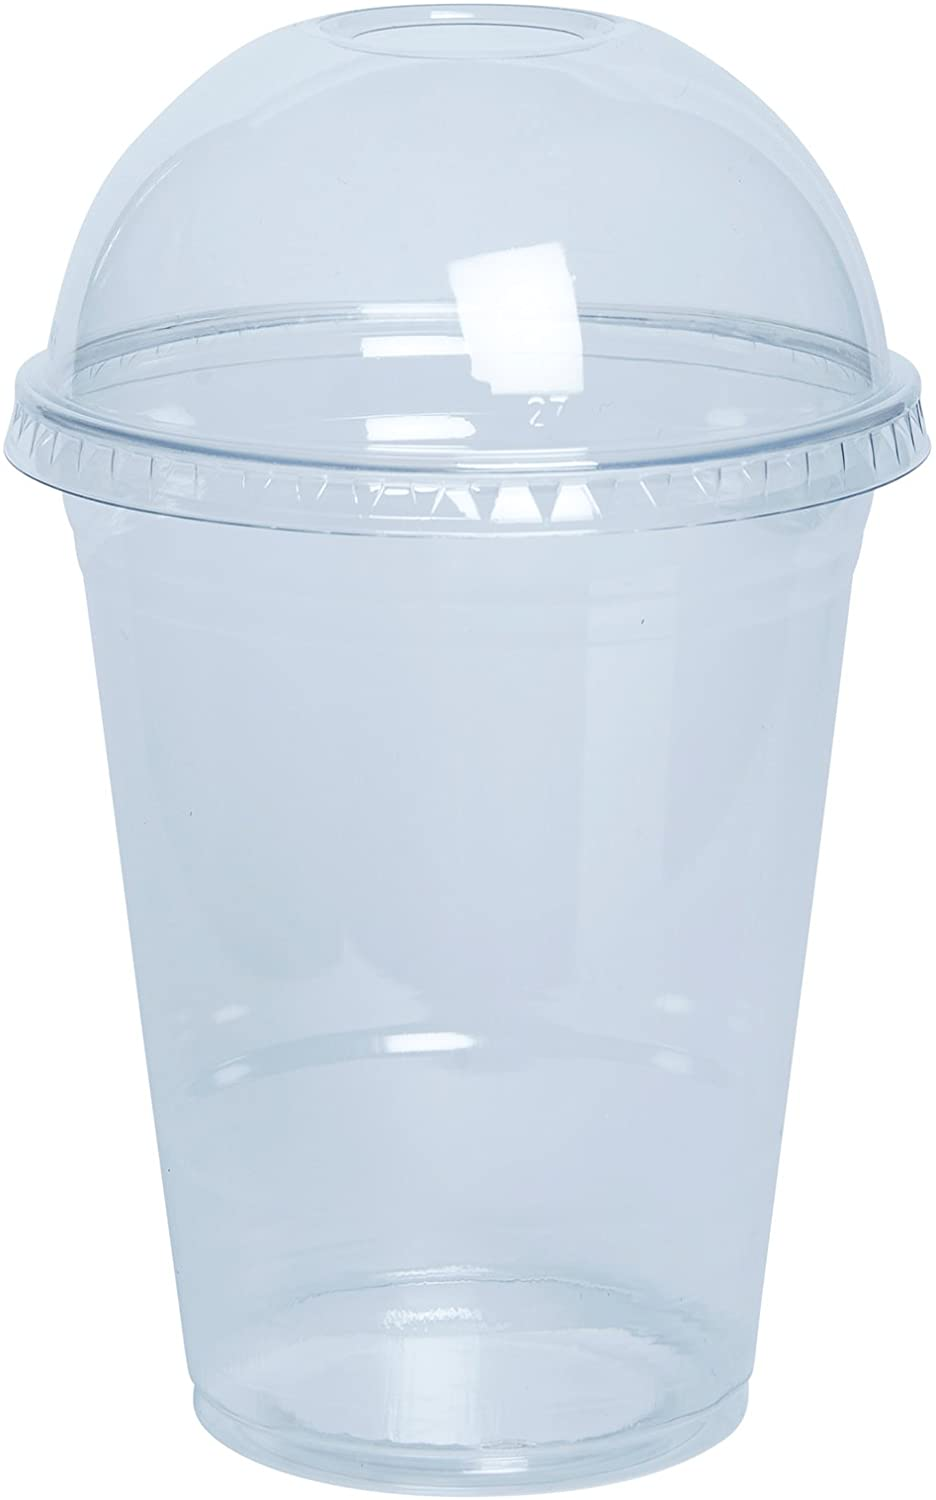 [100 Sets - 16 Oz.] Plastic Cups With Dome Lids, Clear Plastic Cups With Flat Lids Disposable Party Drinks,Clear Crystal 450ml